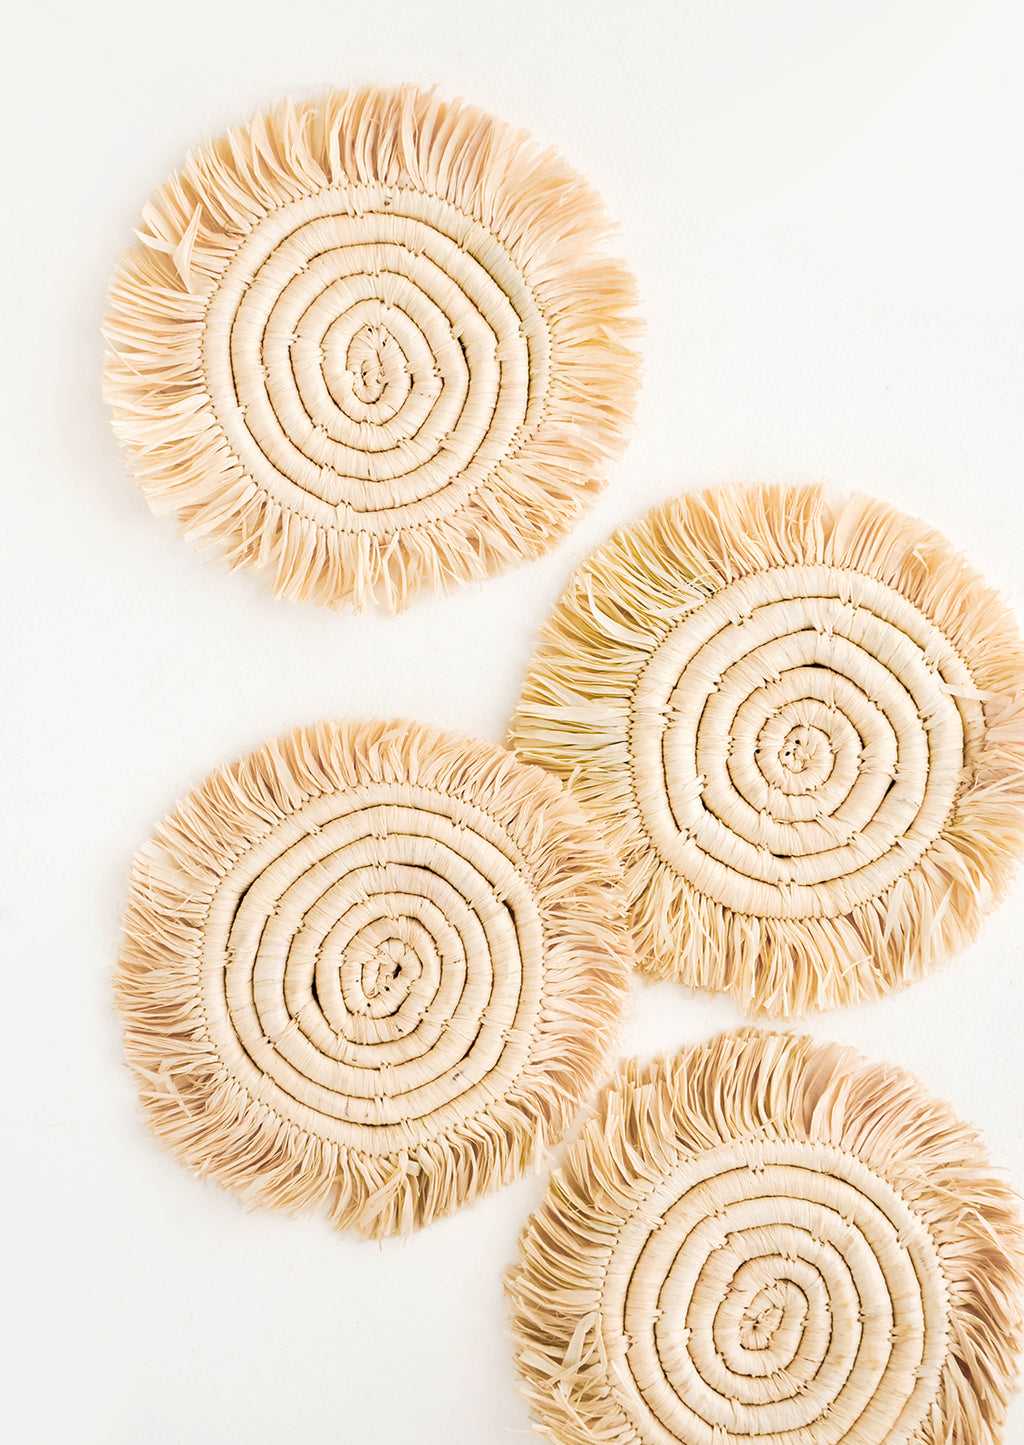 Natural: Set of 4 Circular Raffia Coasters with Fringed Trim in Natural